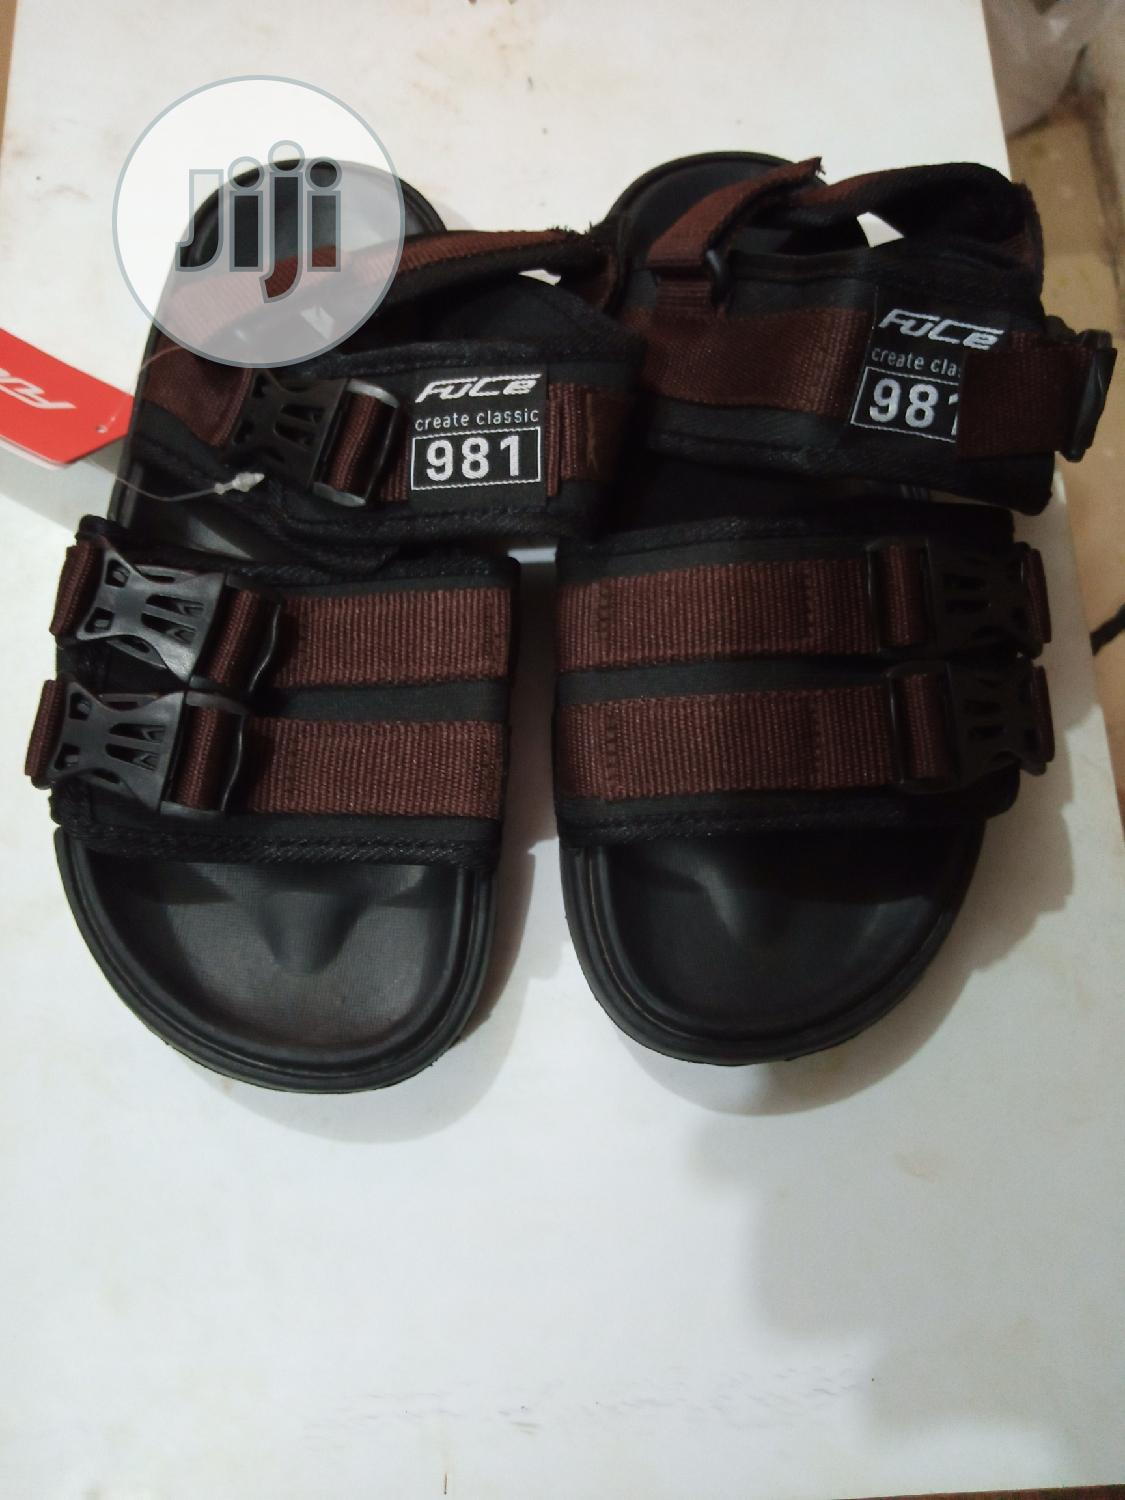 Fuce School Sandals, Black and Brown | Shoes for sale in Ikorodu, Lagos State, Nigeria